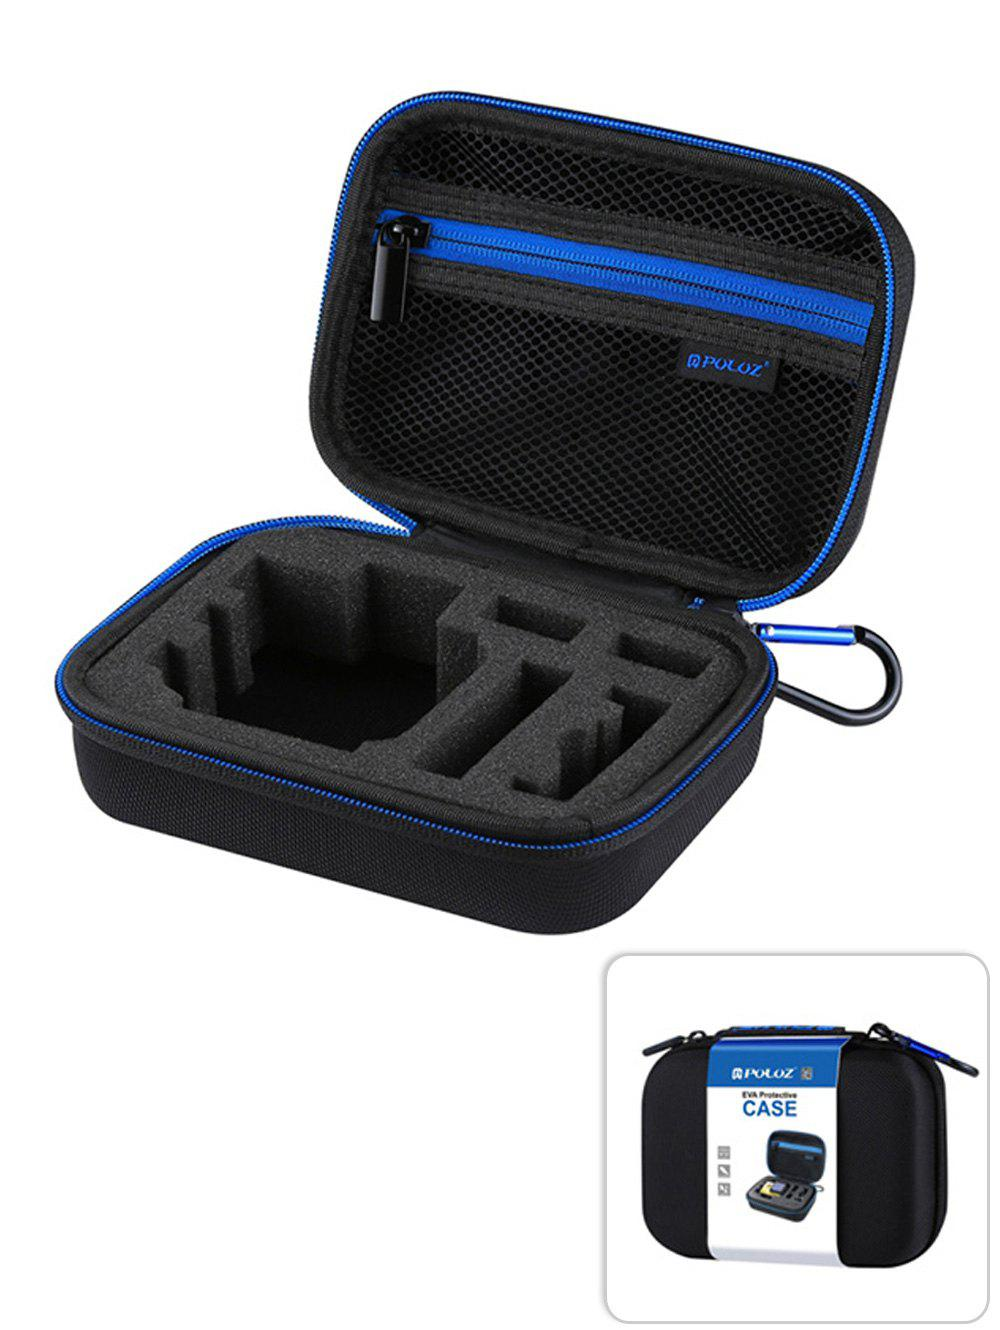 PULUZ Waterproof Portable Travel Protective Case for GoPro Hero 6, 5, 4, 3+, 3, 2, 1 and Accessories - BLACK